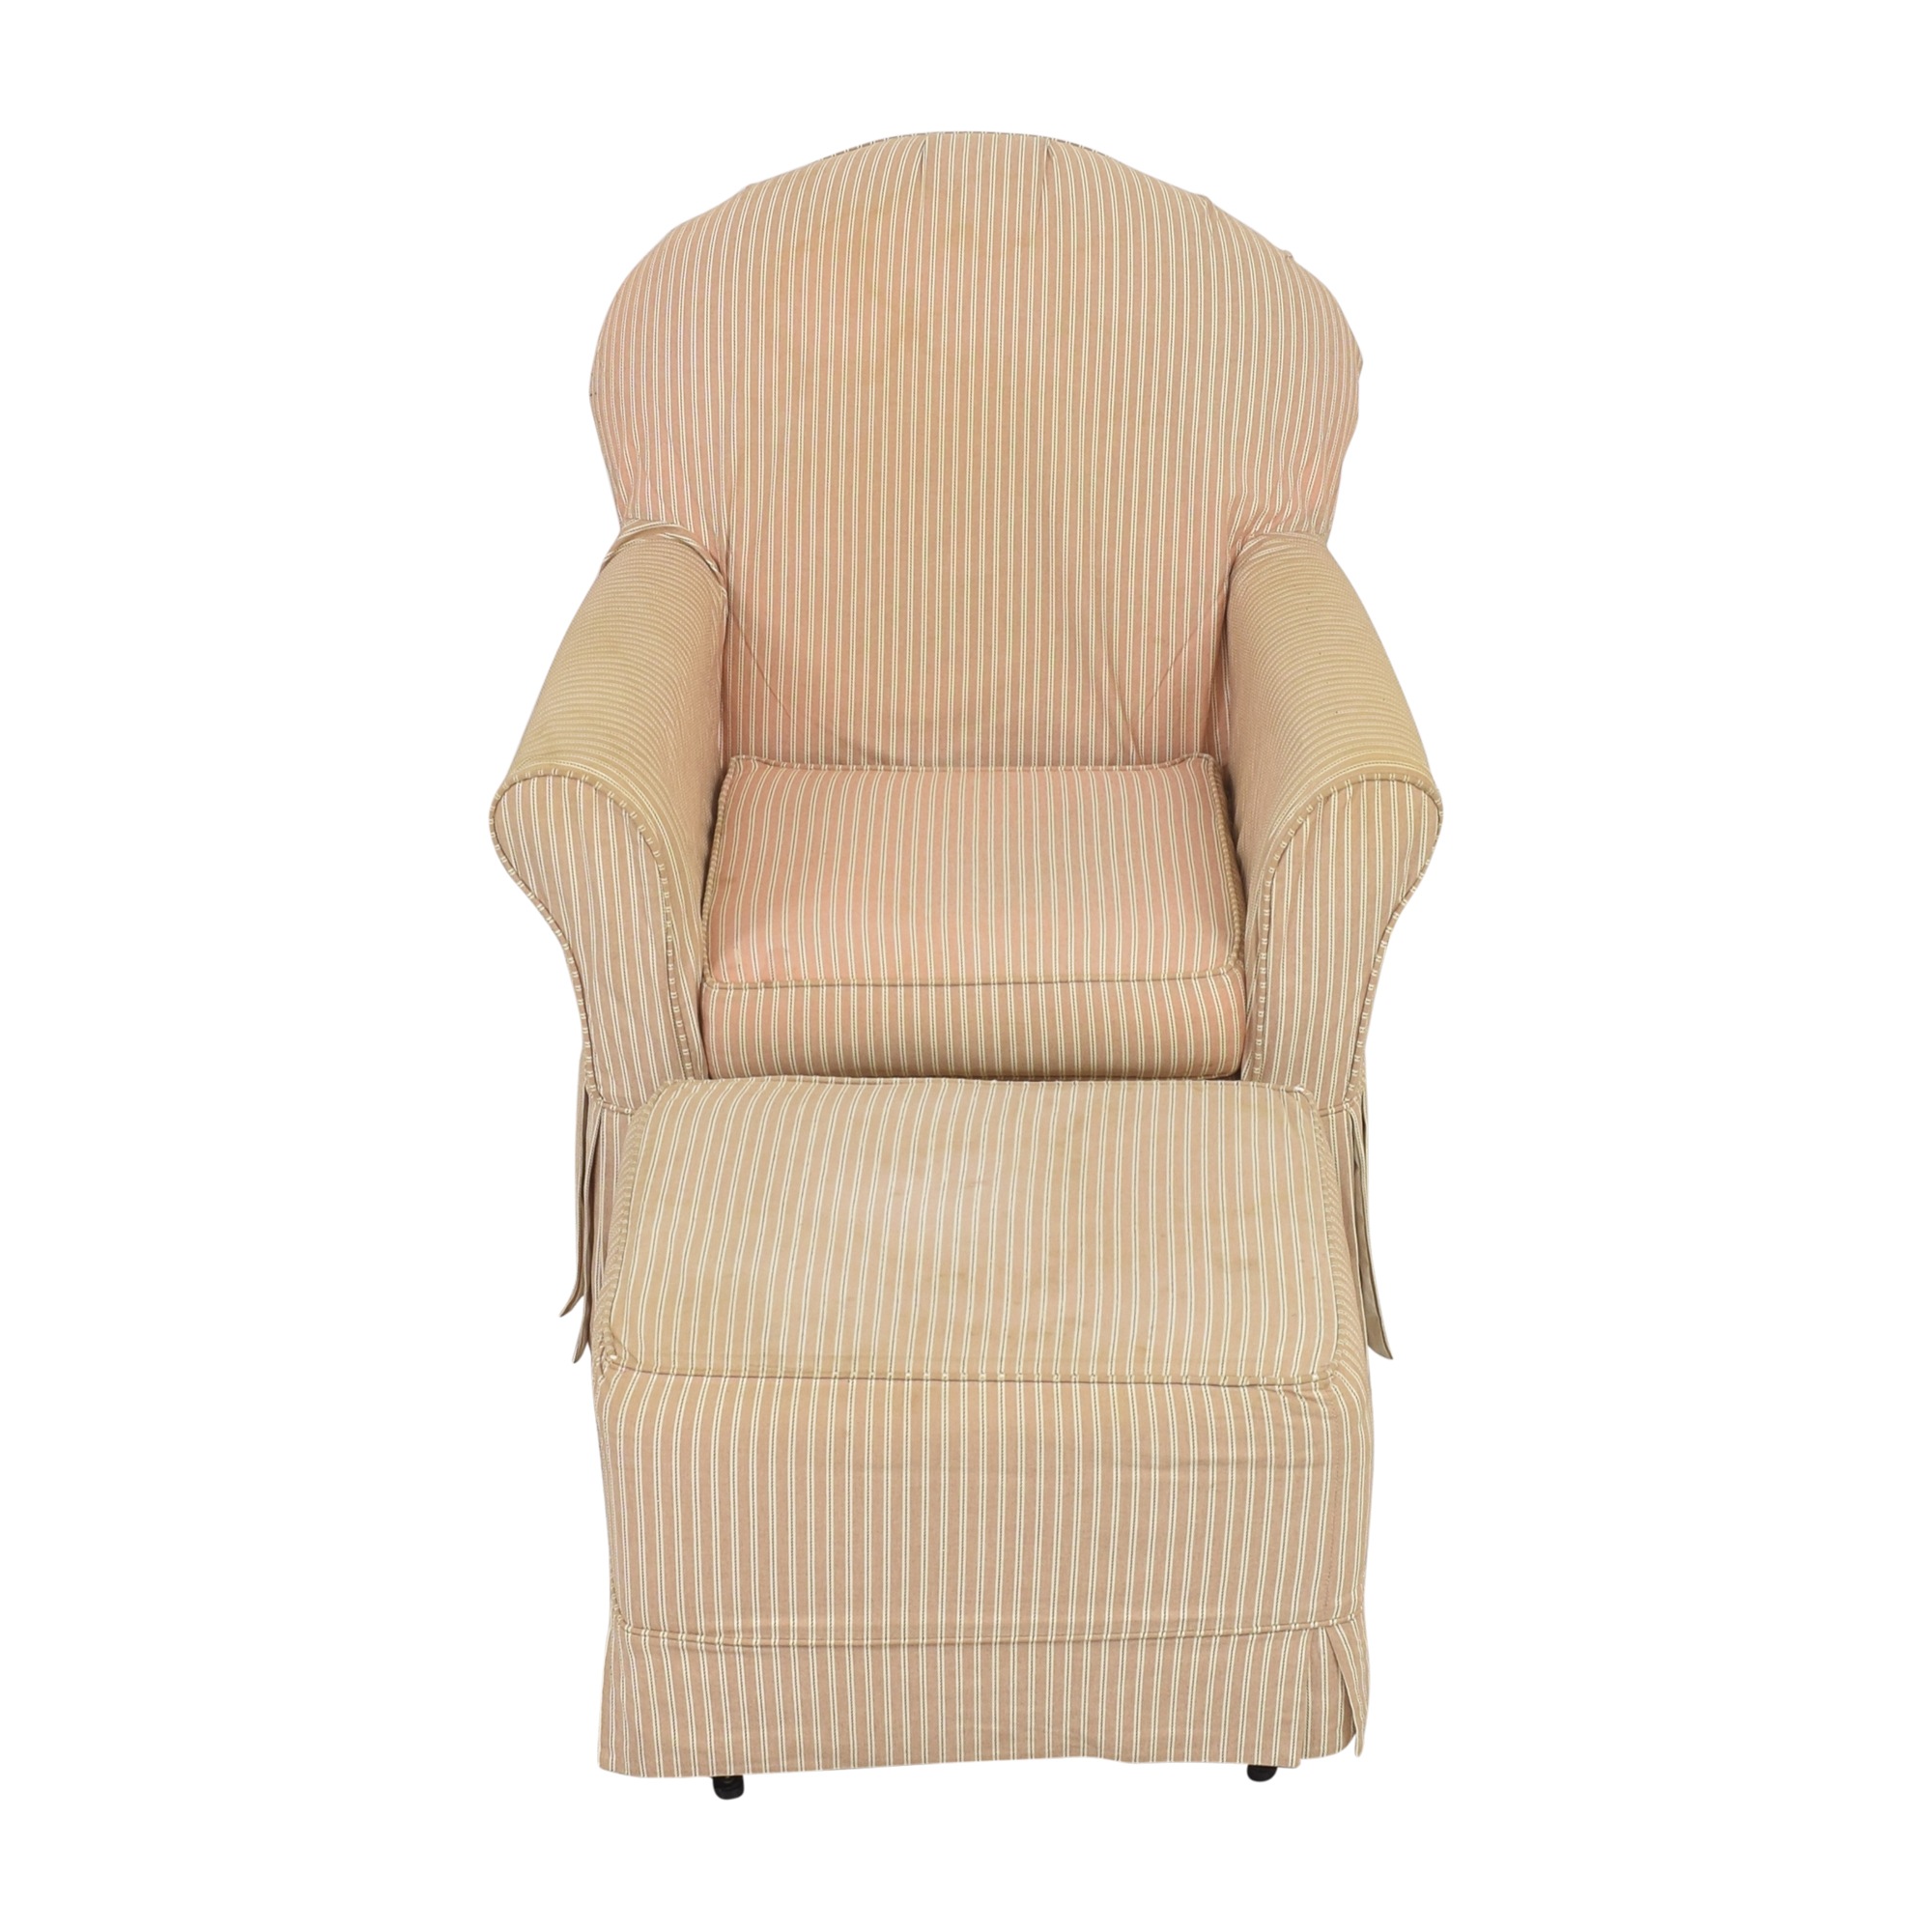 Little Castle Furniture Little Castle Furniture Slipcovered Royal Glider and Ottoman Accent Chairs